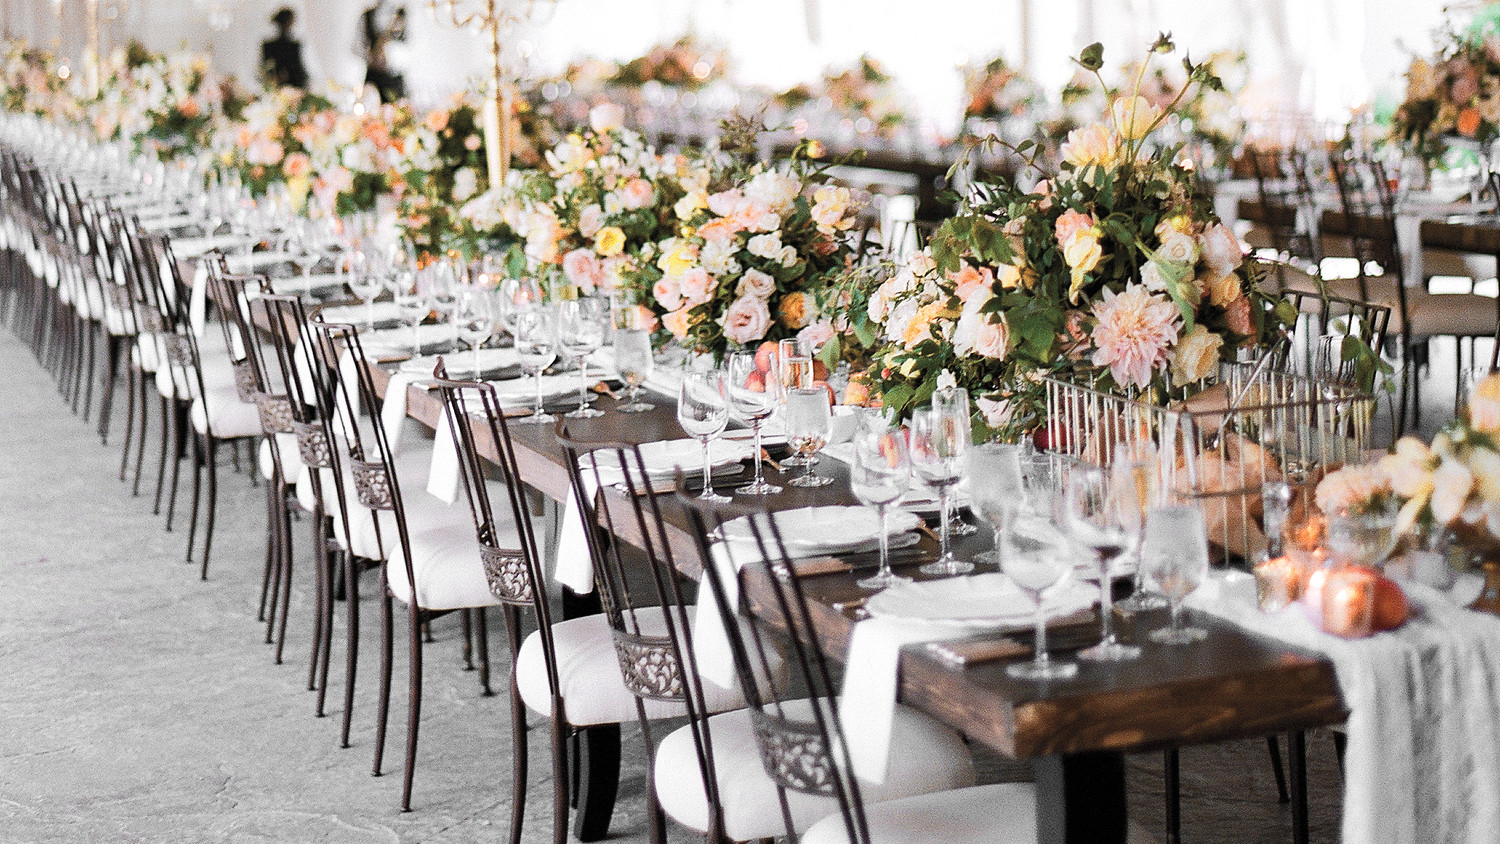 how to decorate wedding reception tables 47 hanging wedding d 233 cor ideas martha stewart weddings 4923